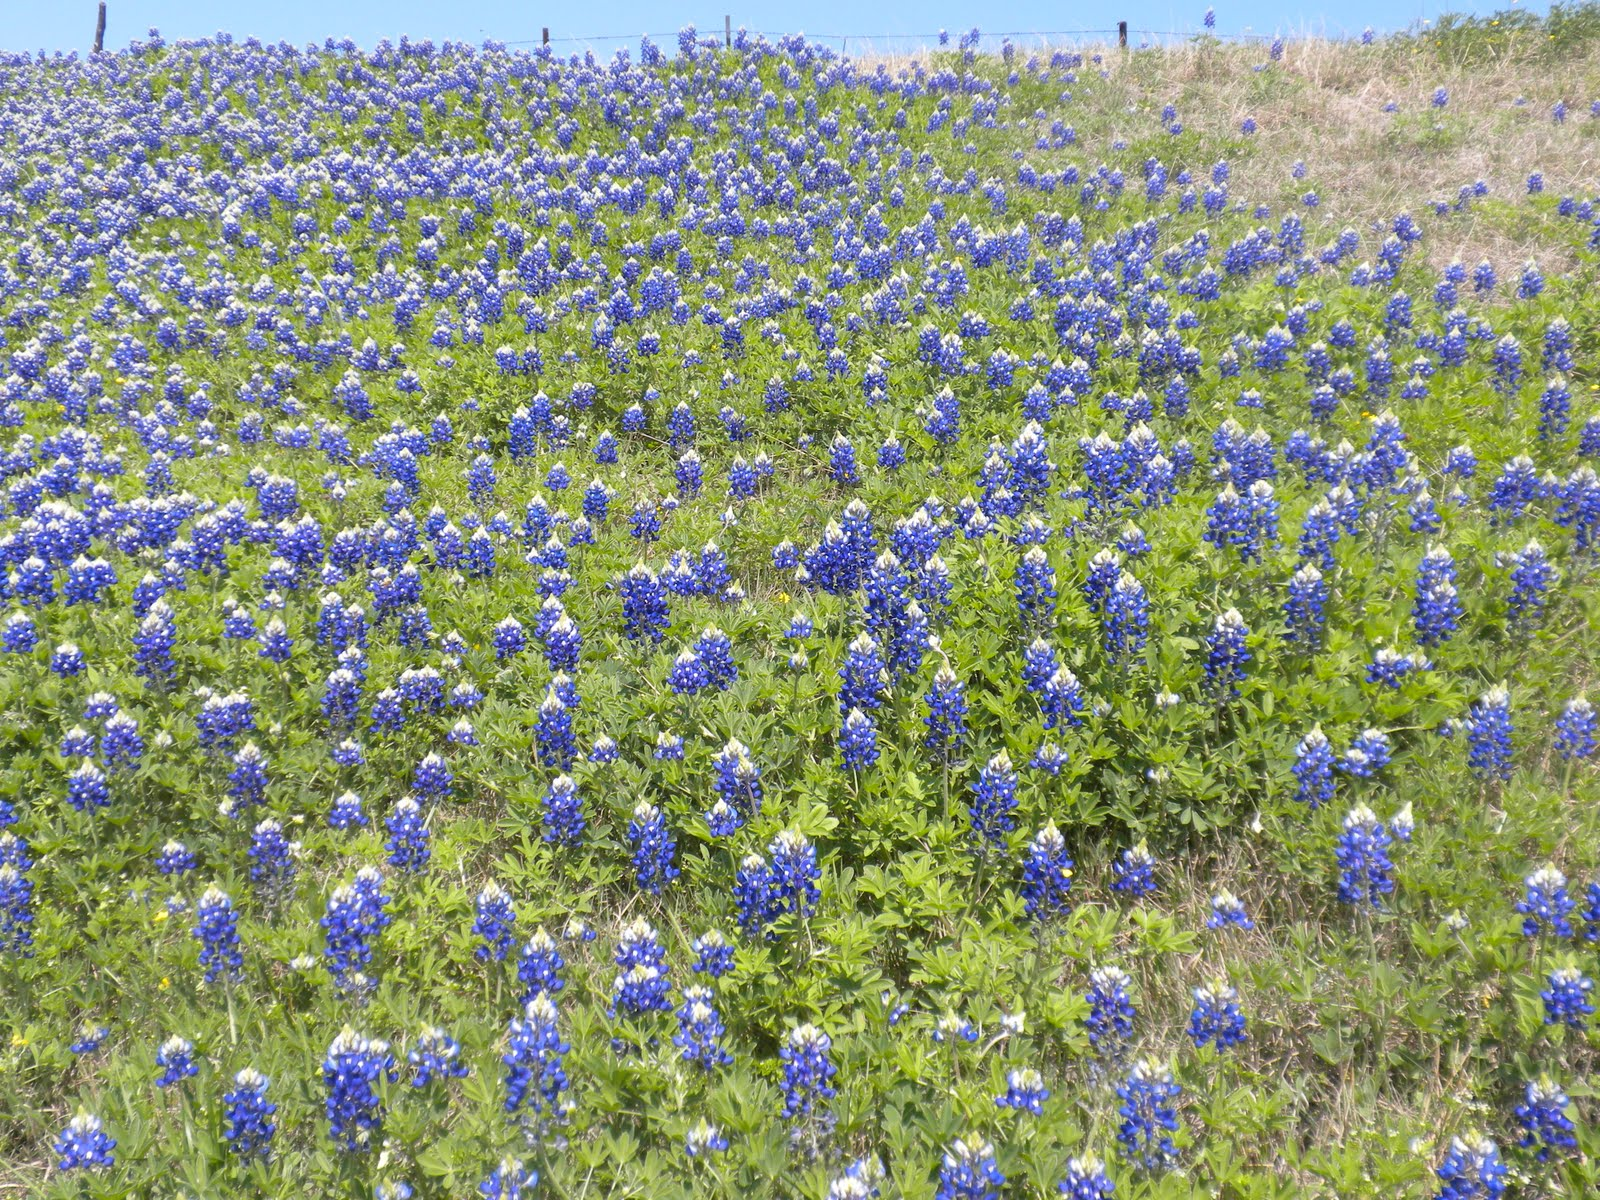 Cowgurl S Blessing Bluebonnet Time In Texas